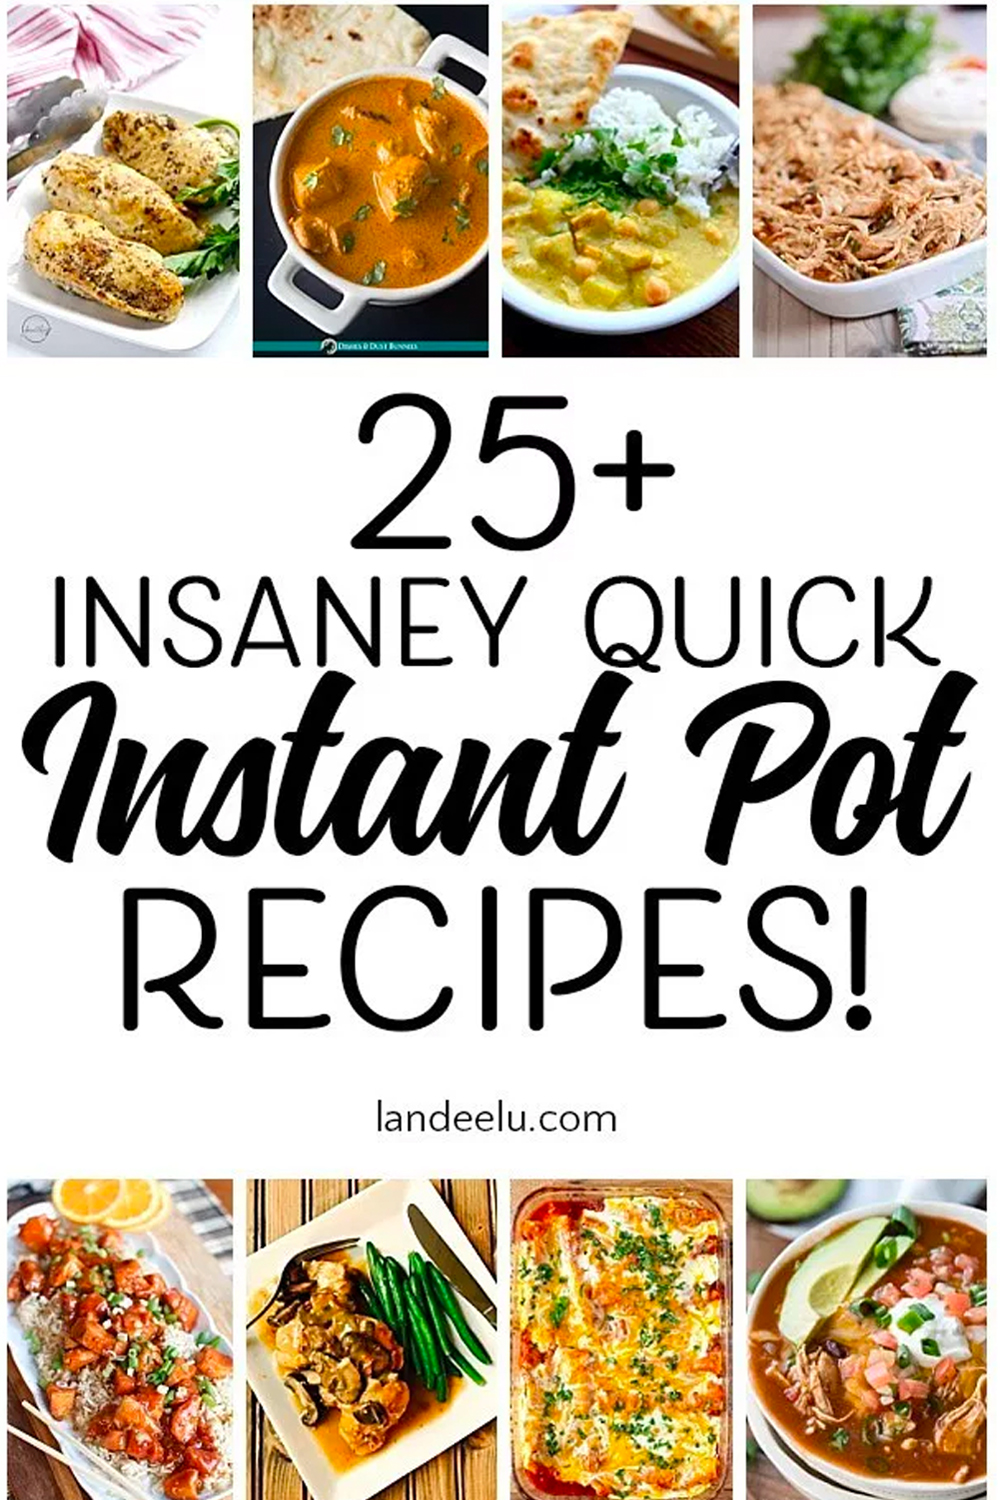 Try these awesome and quick instant pot recipes to get dinner on the table ASAP! #instantpot #instantpotrecipes #familydinners #quickrecipes #dinnerrecipes